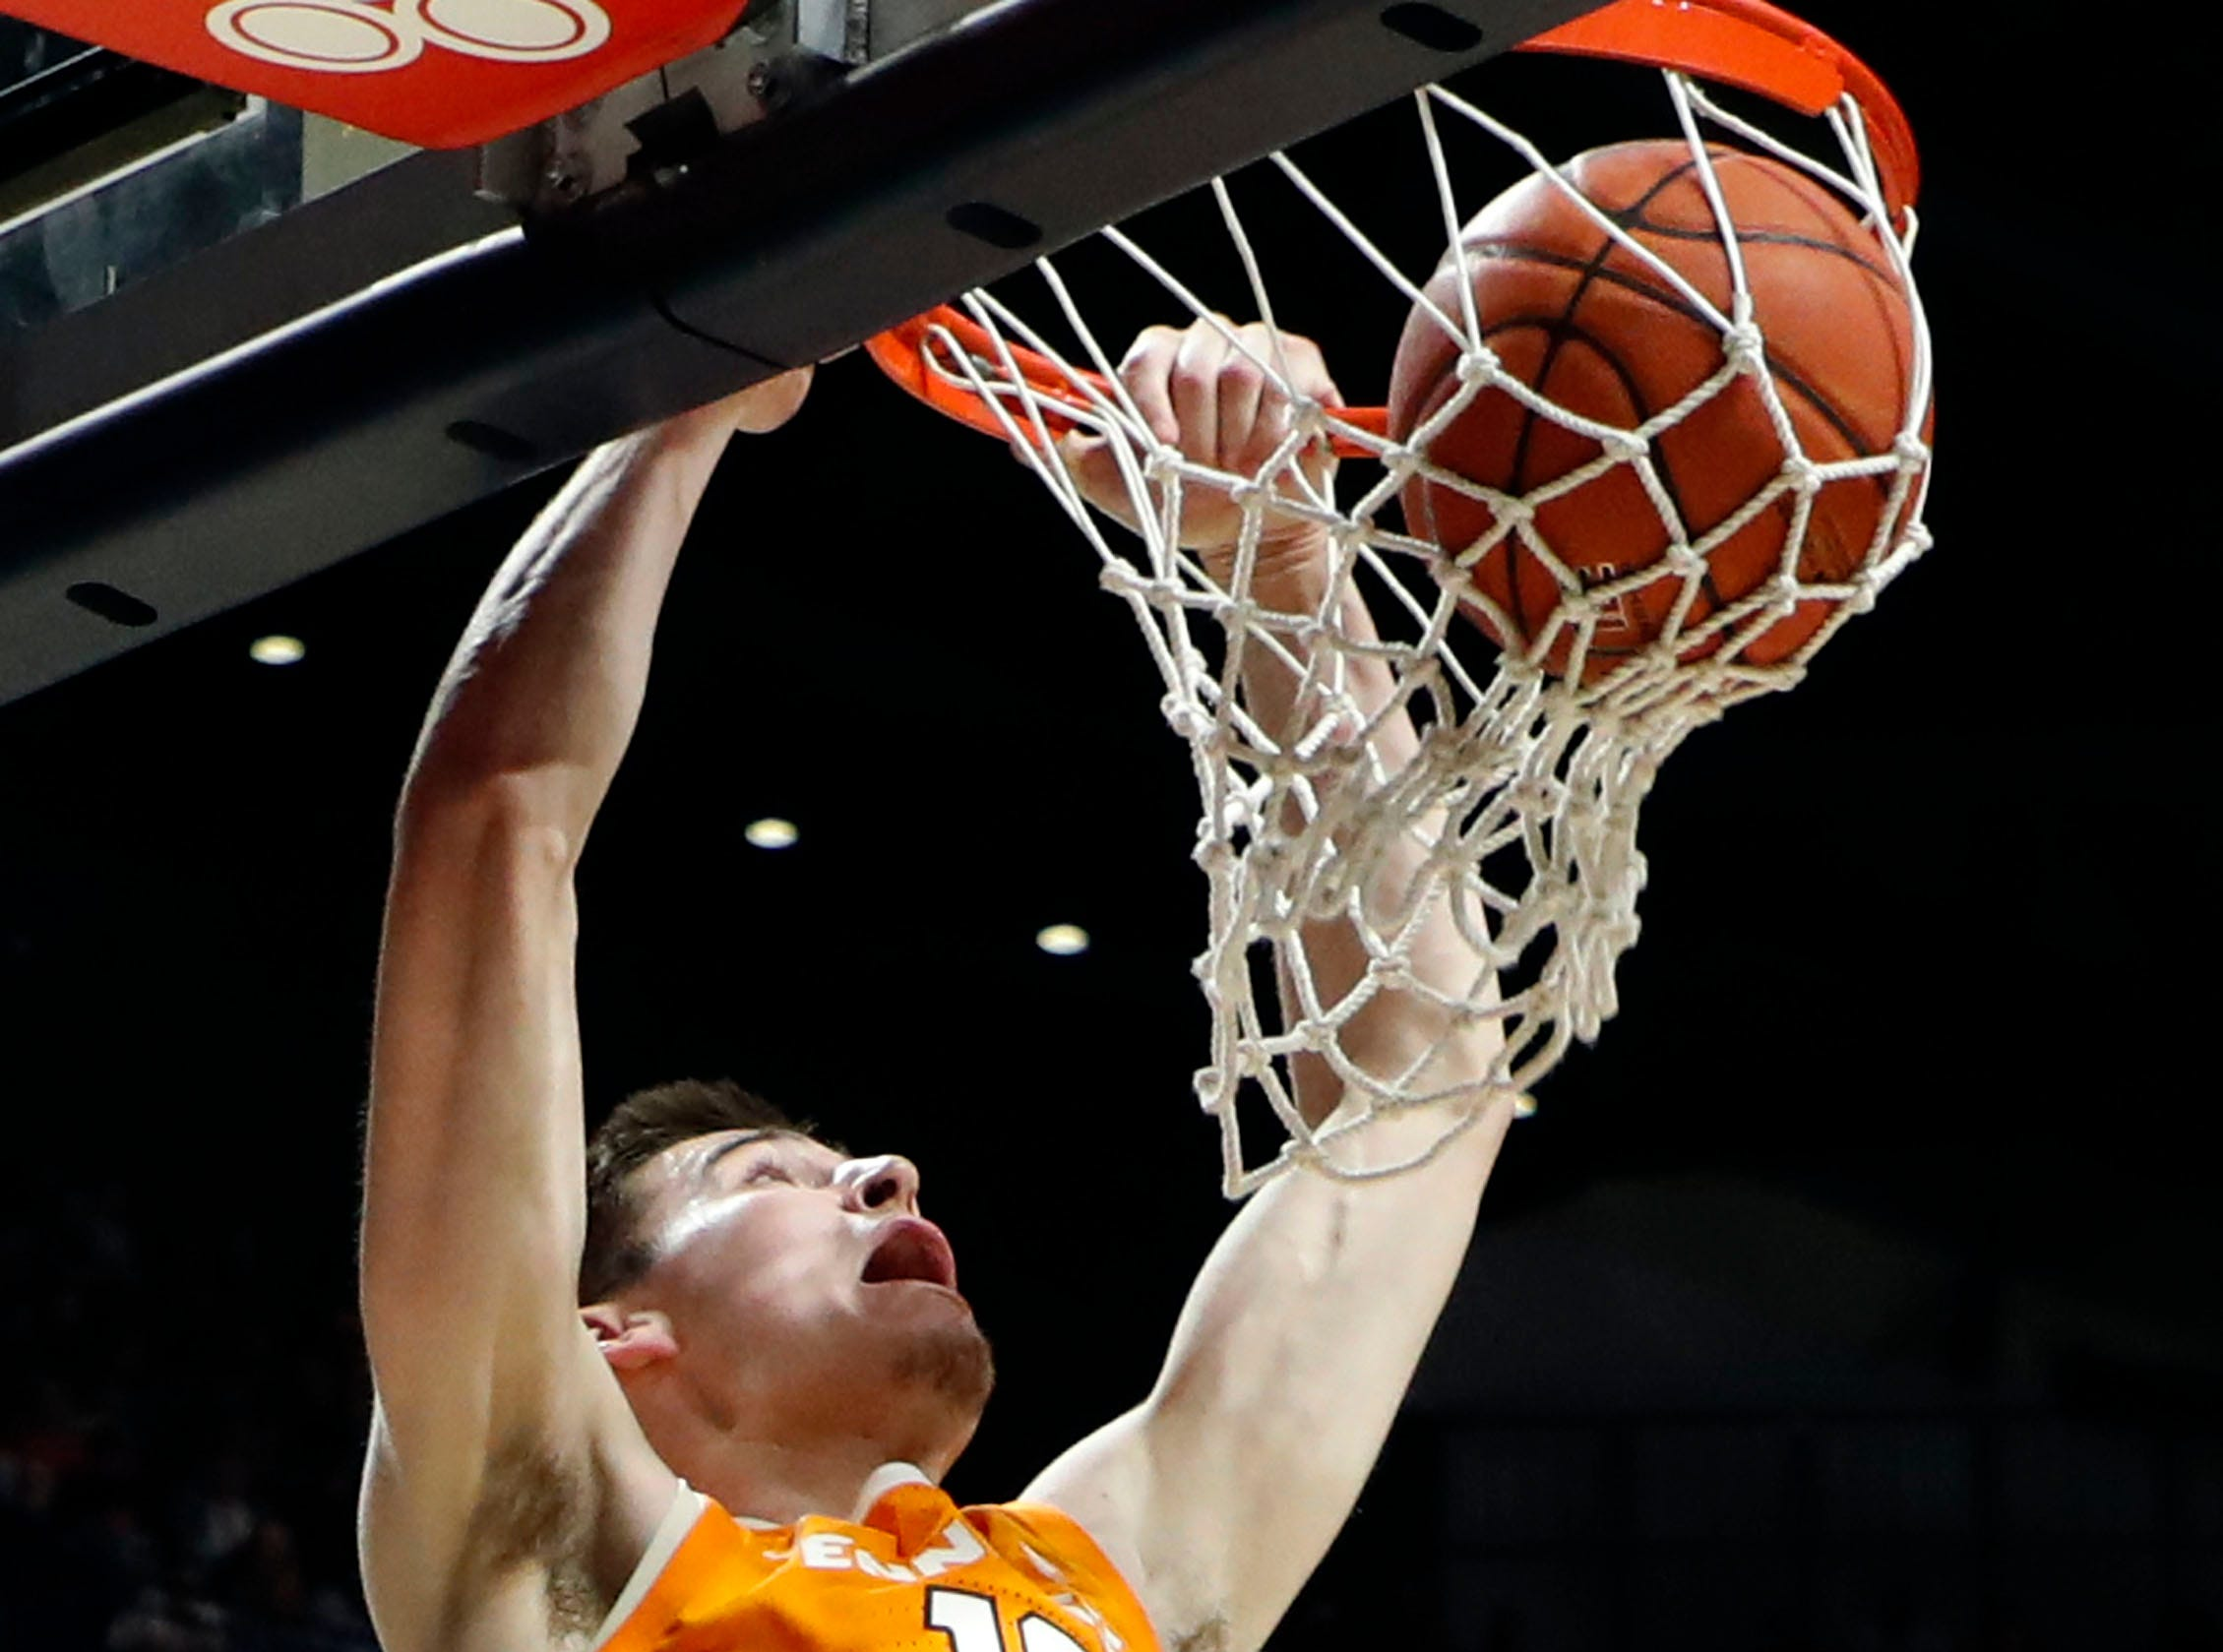 Tennessee forward John Fulkerson (10) watches his dunk go through the net against Mississippi during the first half of an NCAA college basketball game in Oxford, Miss., Wednesday, Feb. 27, 2019. (AP Photo/Rogelio V. Solis)